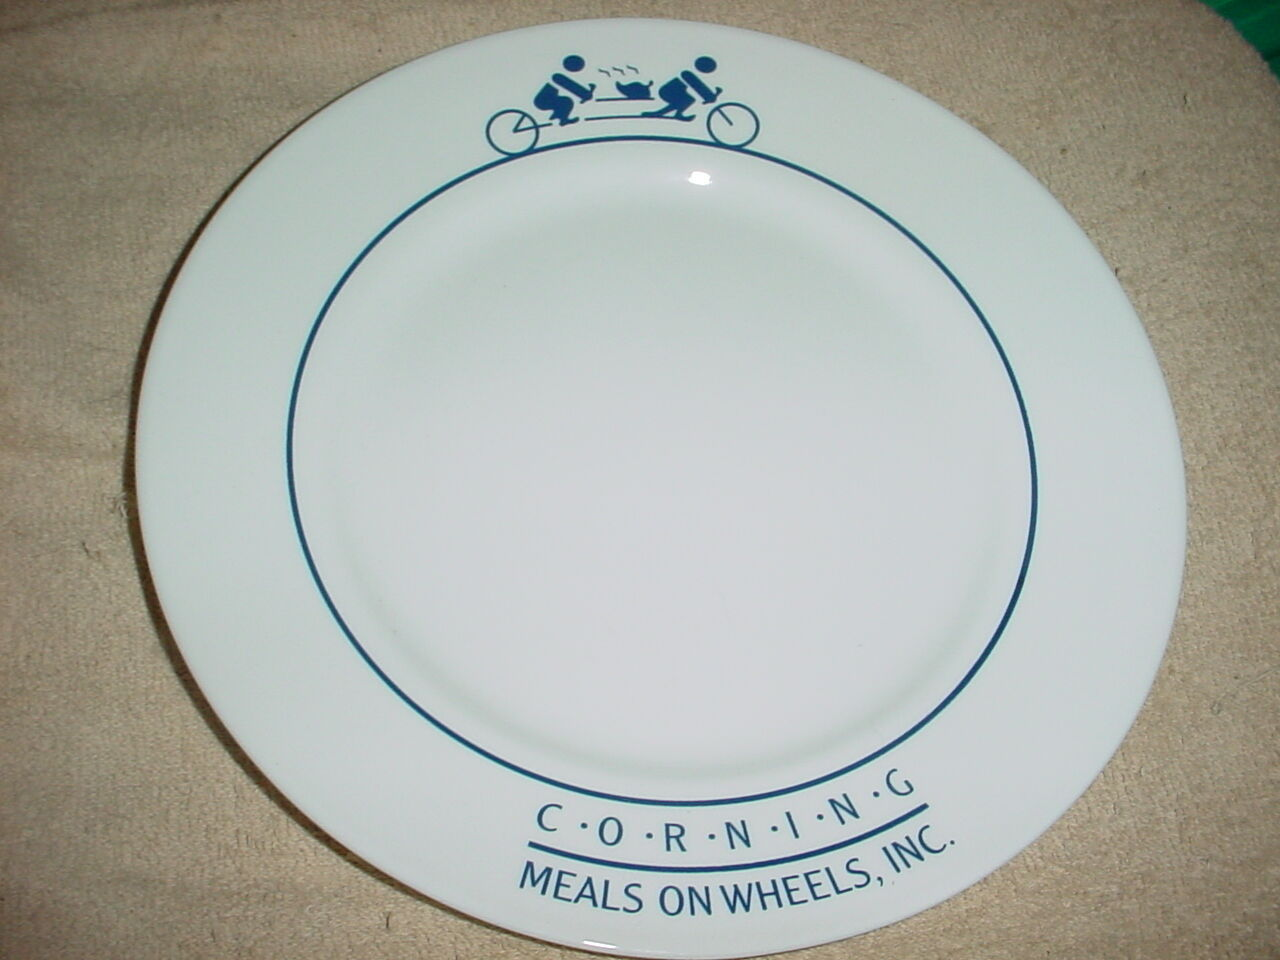 Primary image for CORELLE CORNING NY MEALS ON WHEELS DINNER PLATE VERY RARE FREE USA SHIPPING